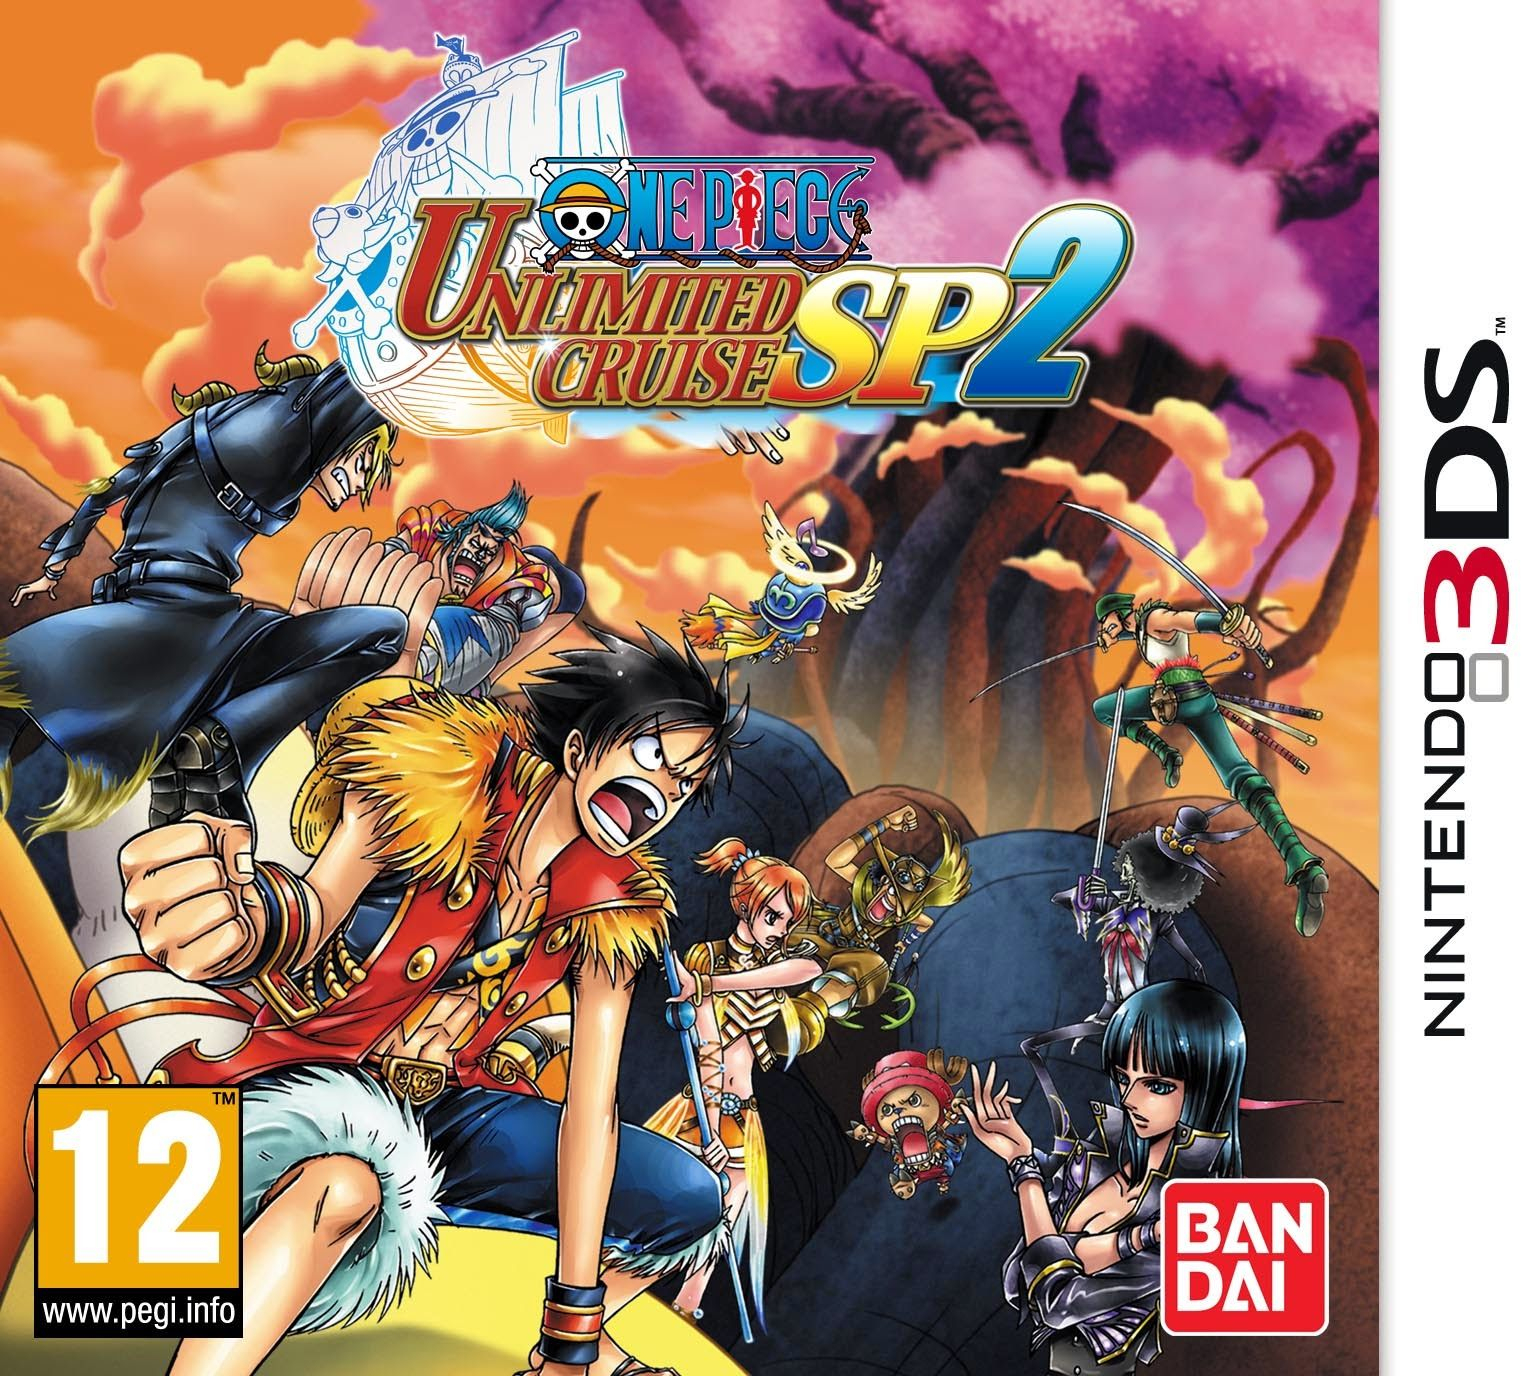 One Piece Unlimited Cruise Sp 1& 2 Rom +Emulator [3Ds] - One concernant Jeux Flash A 2